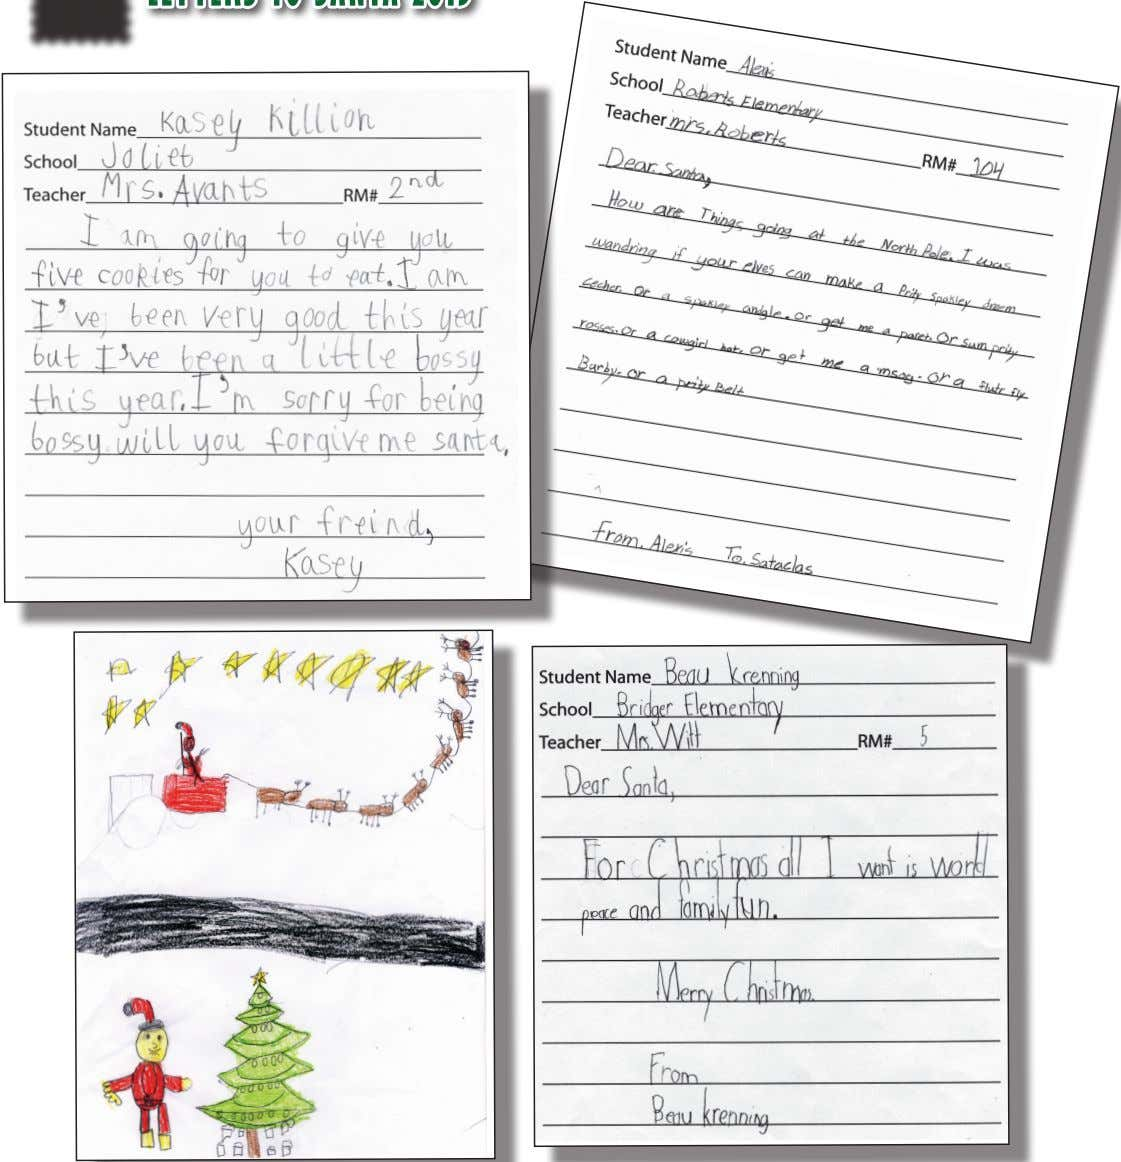 LETTERS TO SANTA 2013 14 — December 19, 2013 A Special publication of The Carbon County